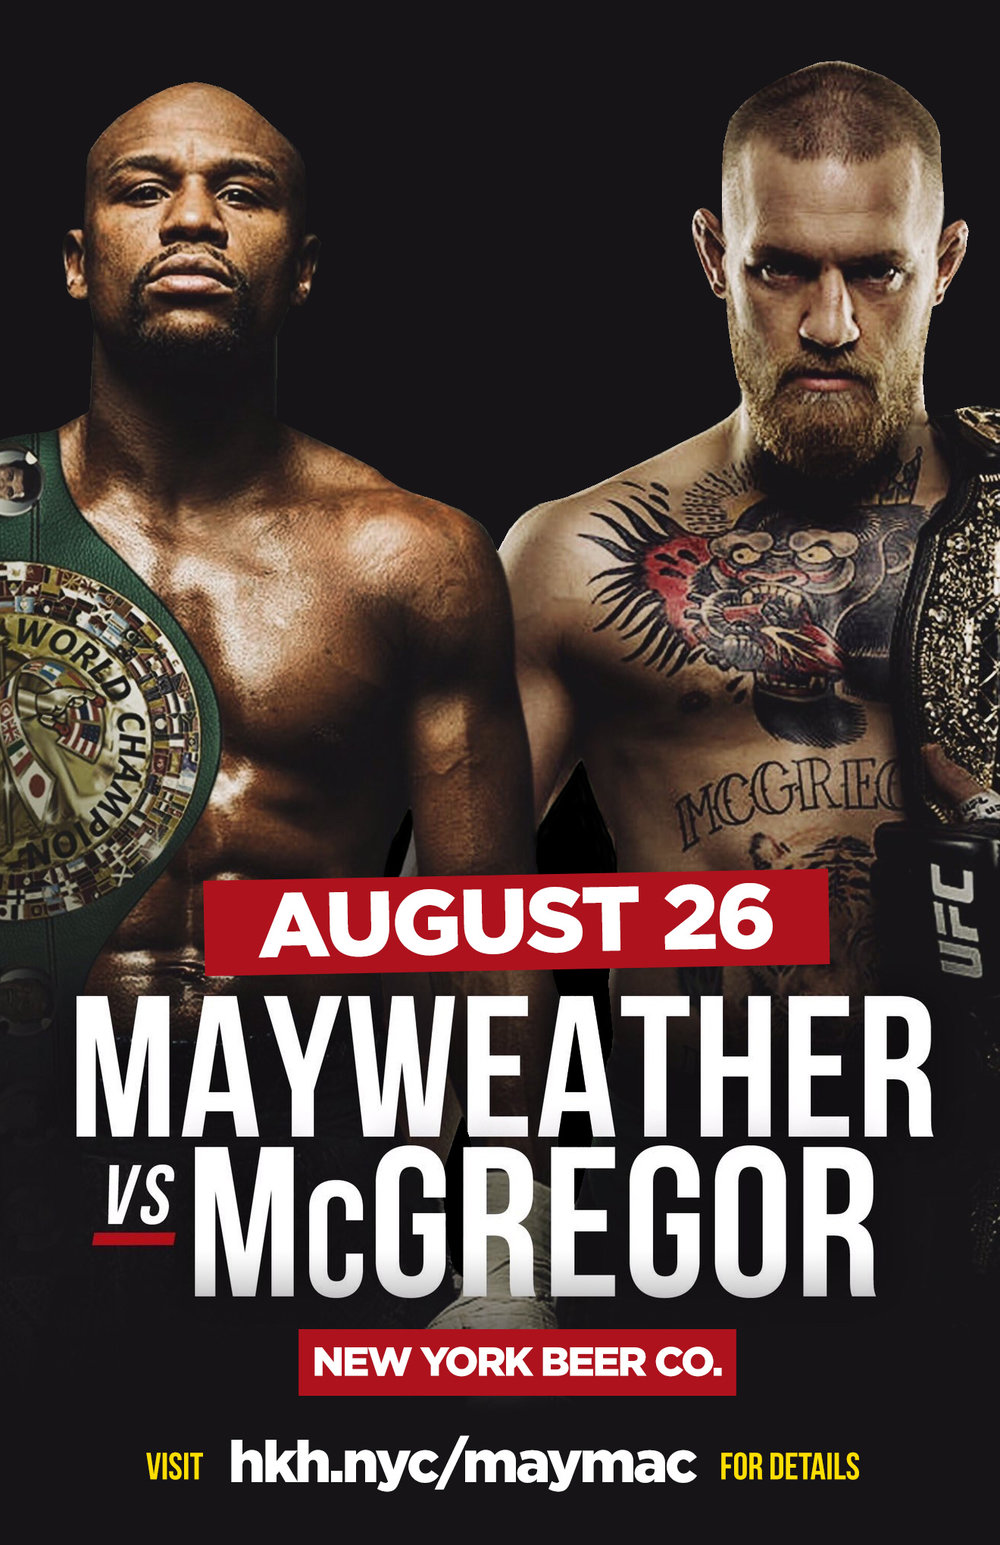 nyc bars showing Mayweather McGregor